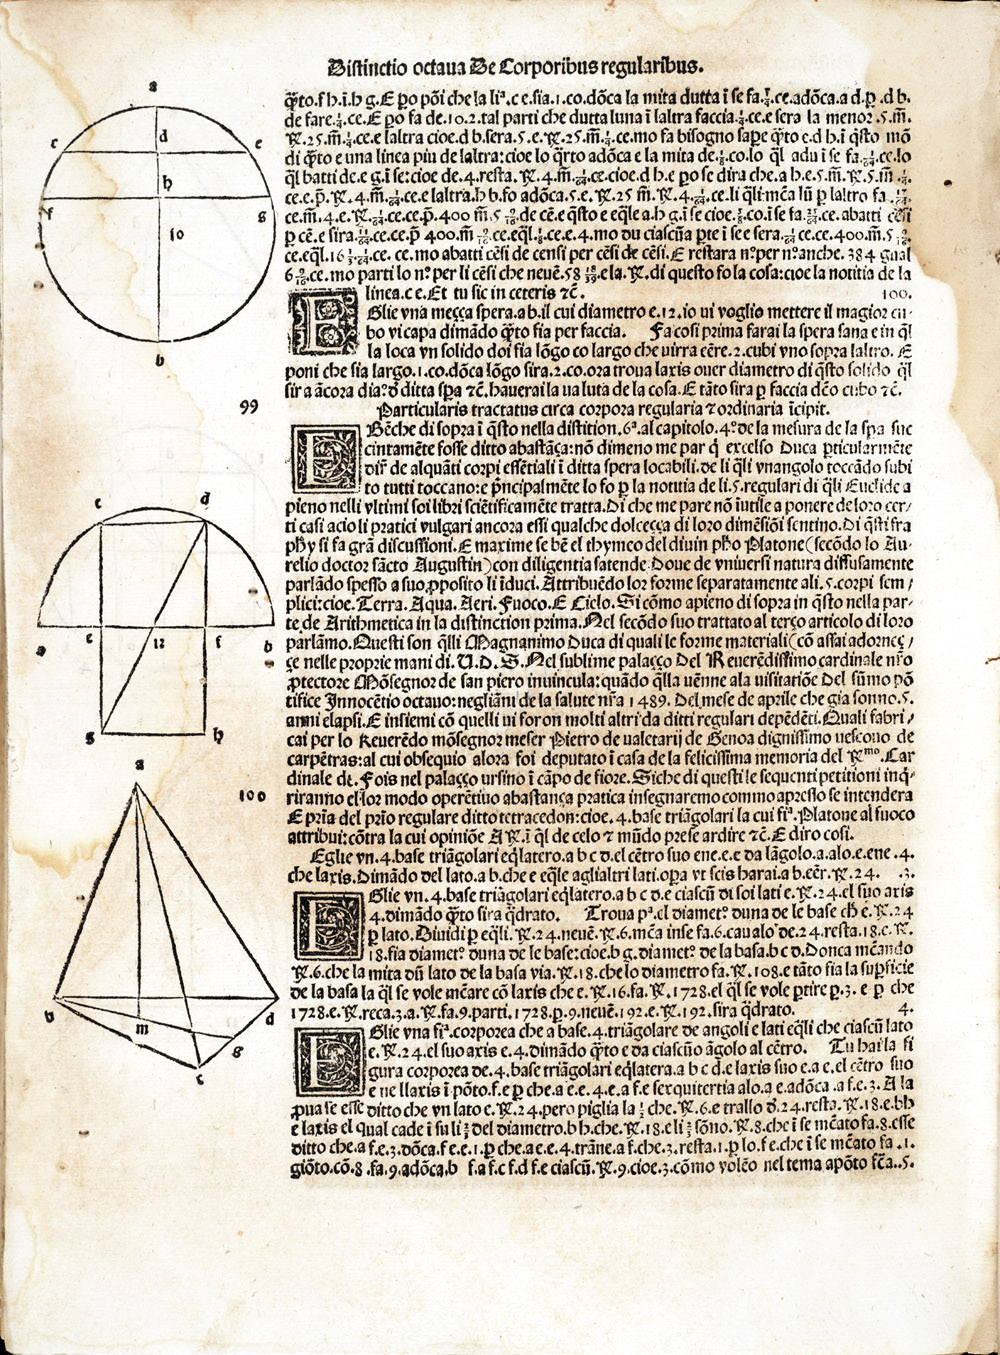 f68 - verso,  Image number:sil7-108-44a